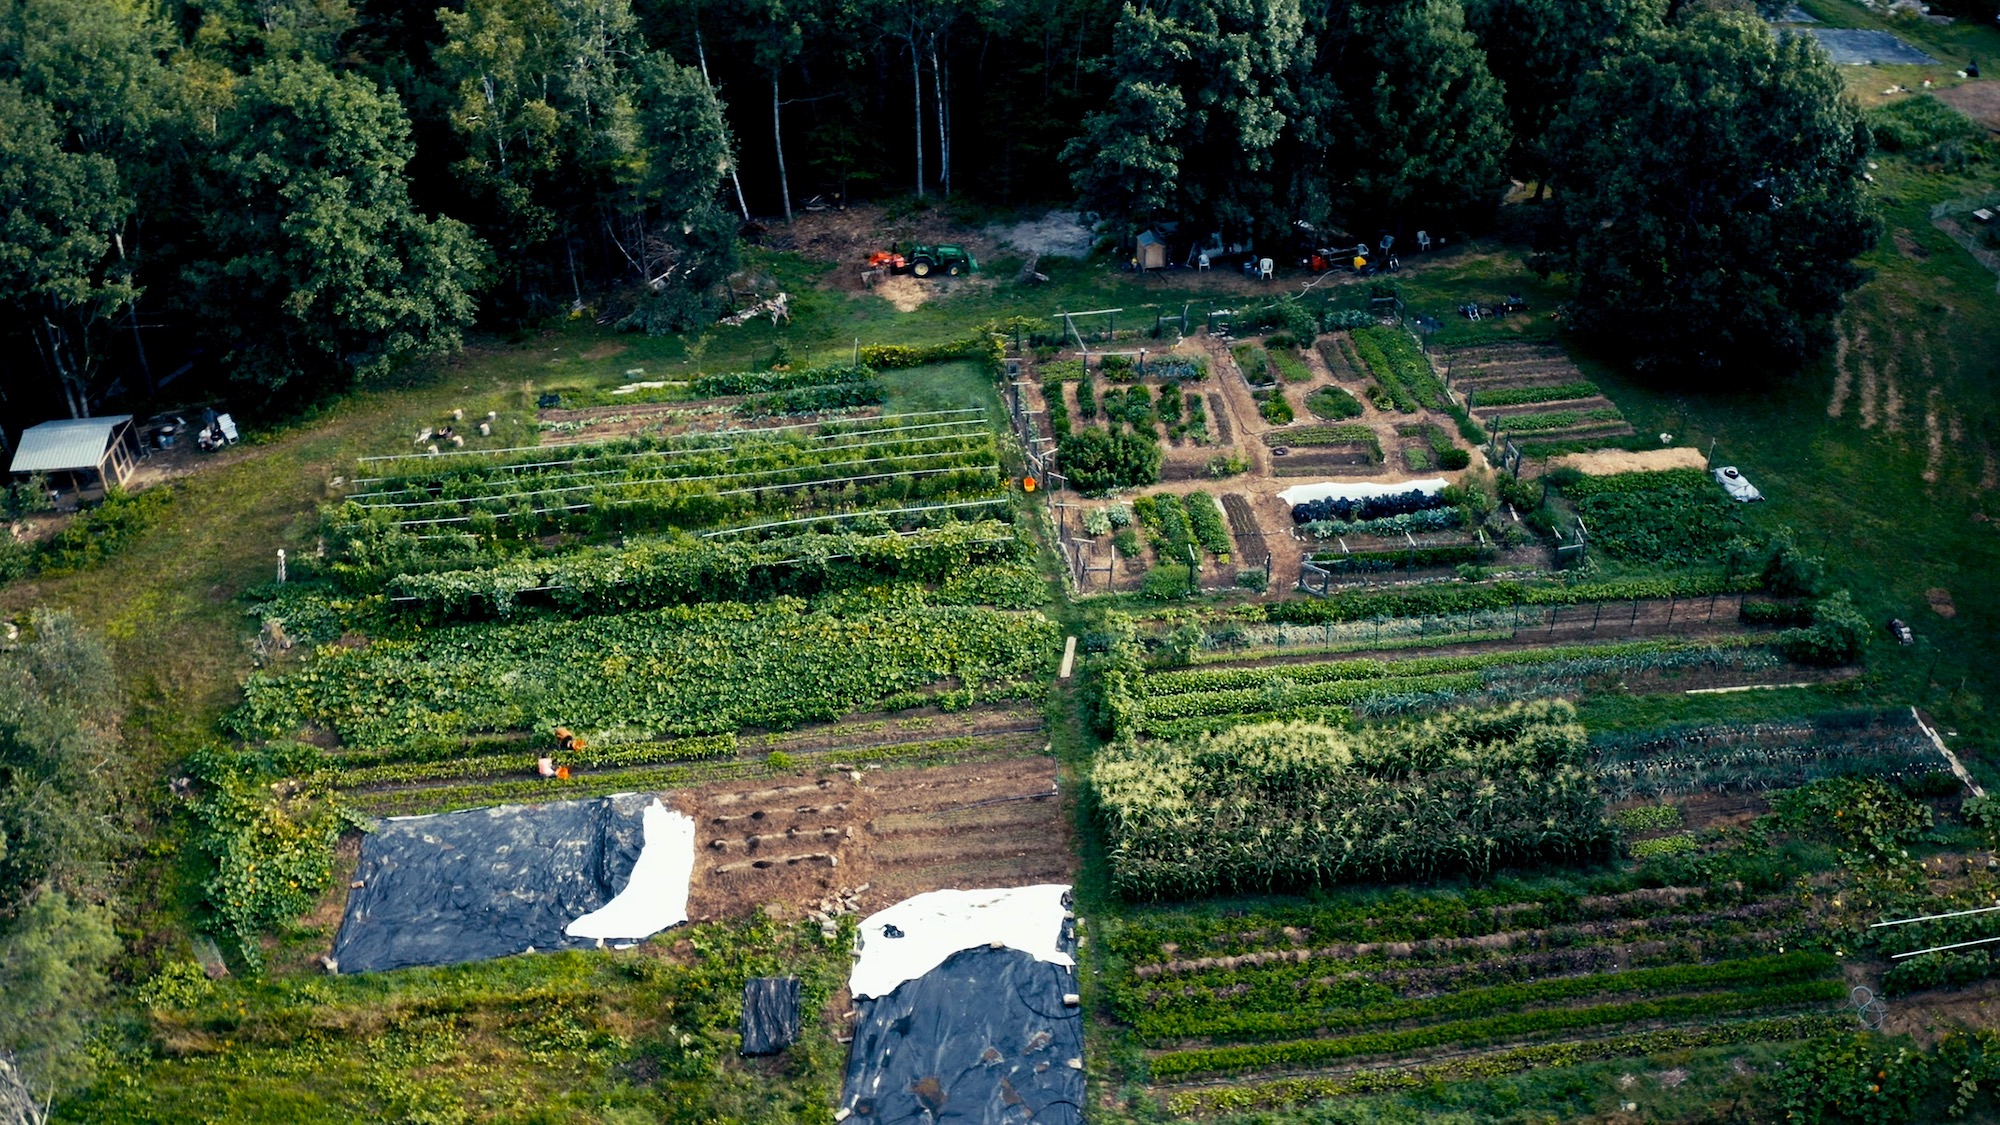 Veggies to Table farm view from above